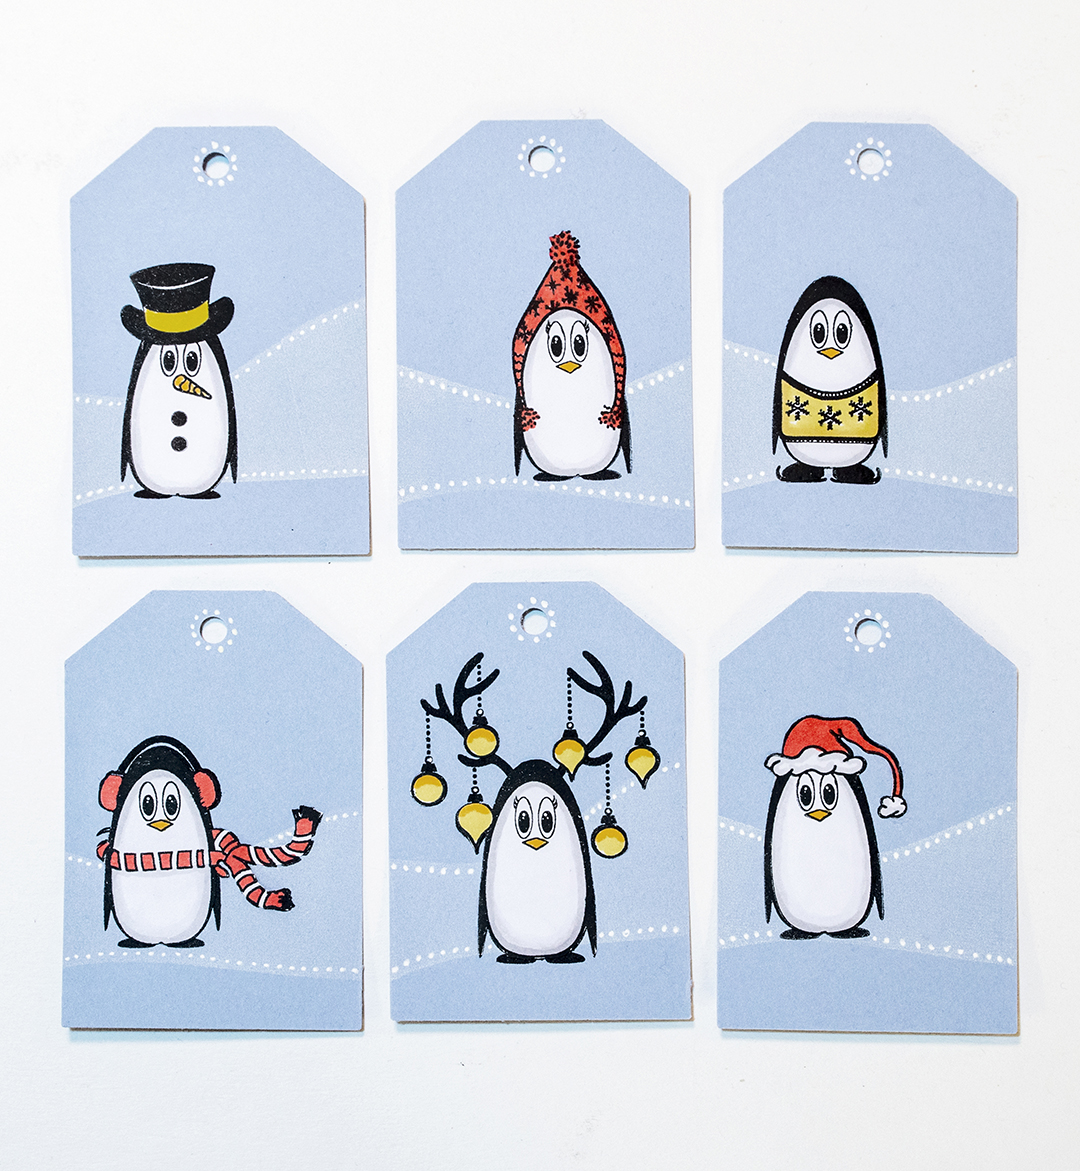 Use StazOn Pigment in Snowflake to Create Christmas Gift Tags